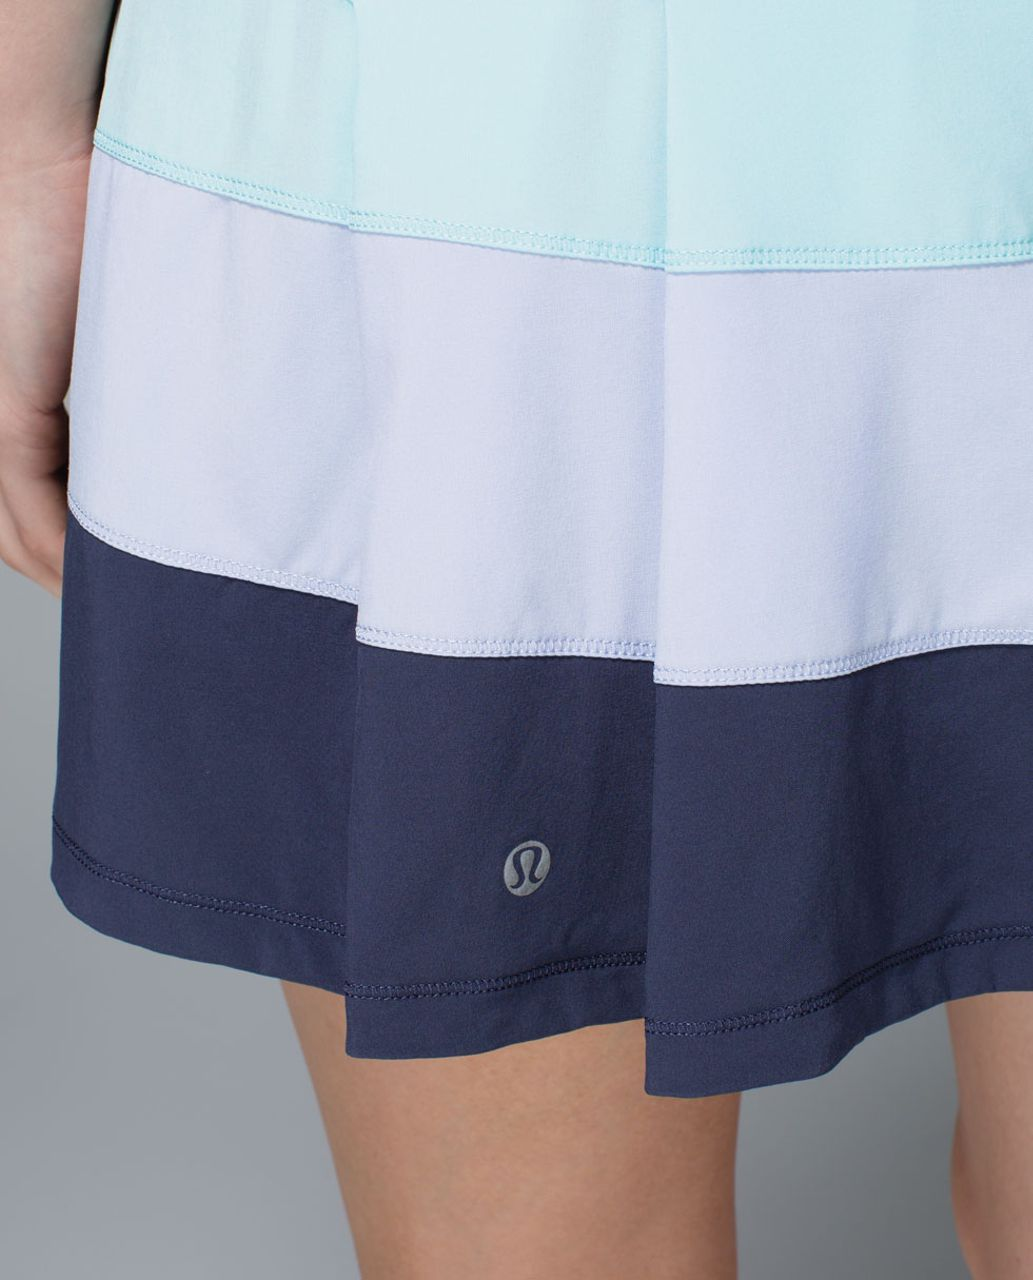 Lululemon Pace Rival Skirt *4-way Stretch (Tall) - Aquamarine / Cool Breeze / Cadet Blue